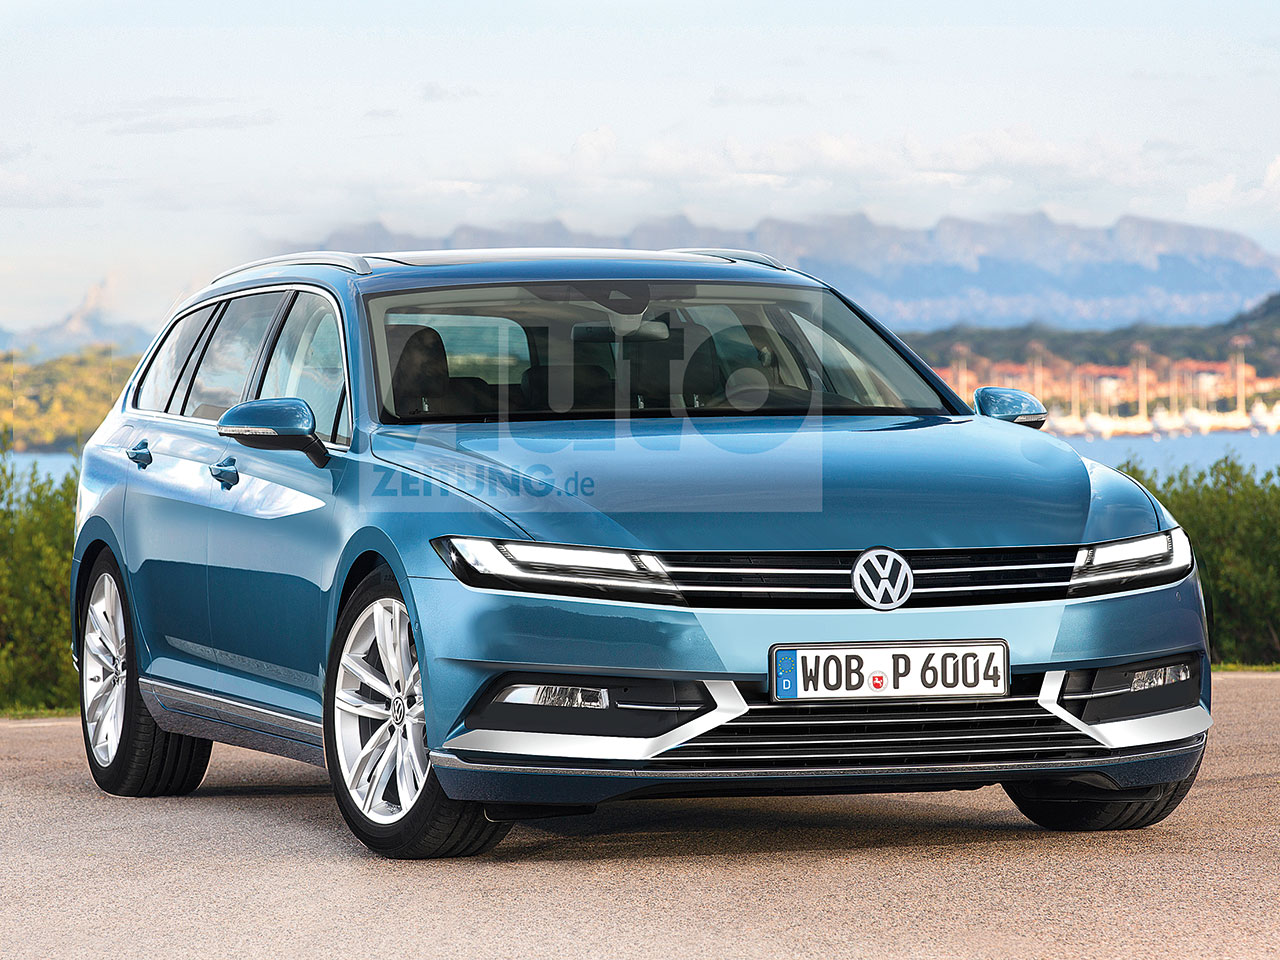 2021 The Next Generation VW Cc Performance and New Engine